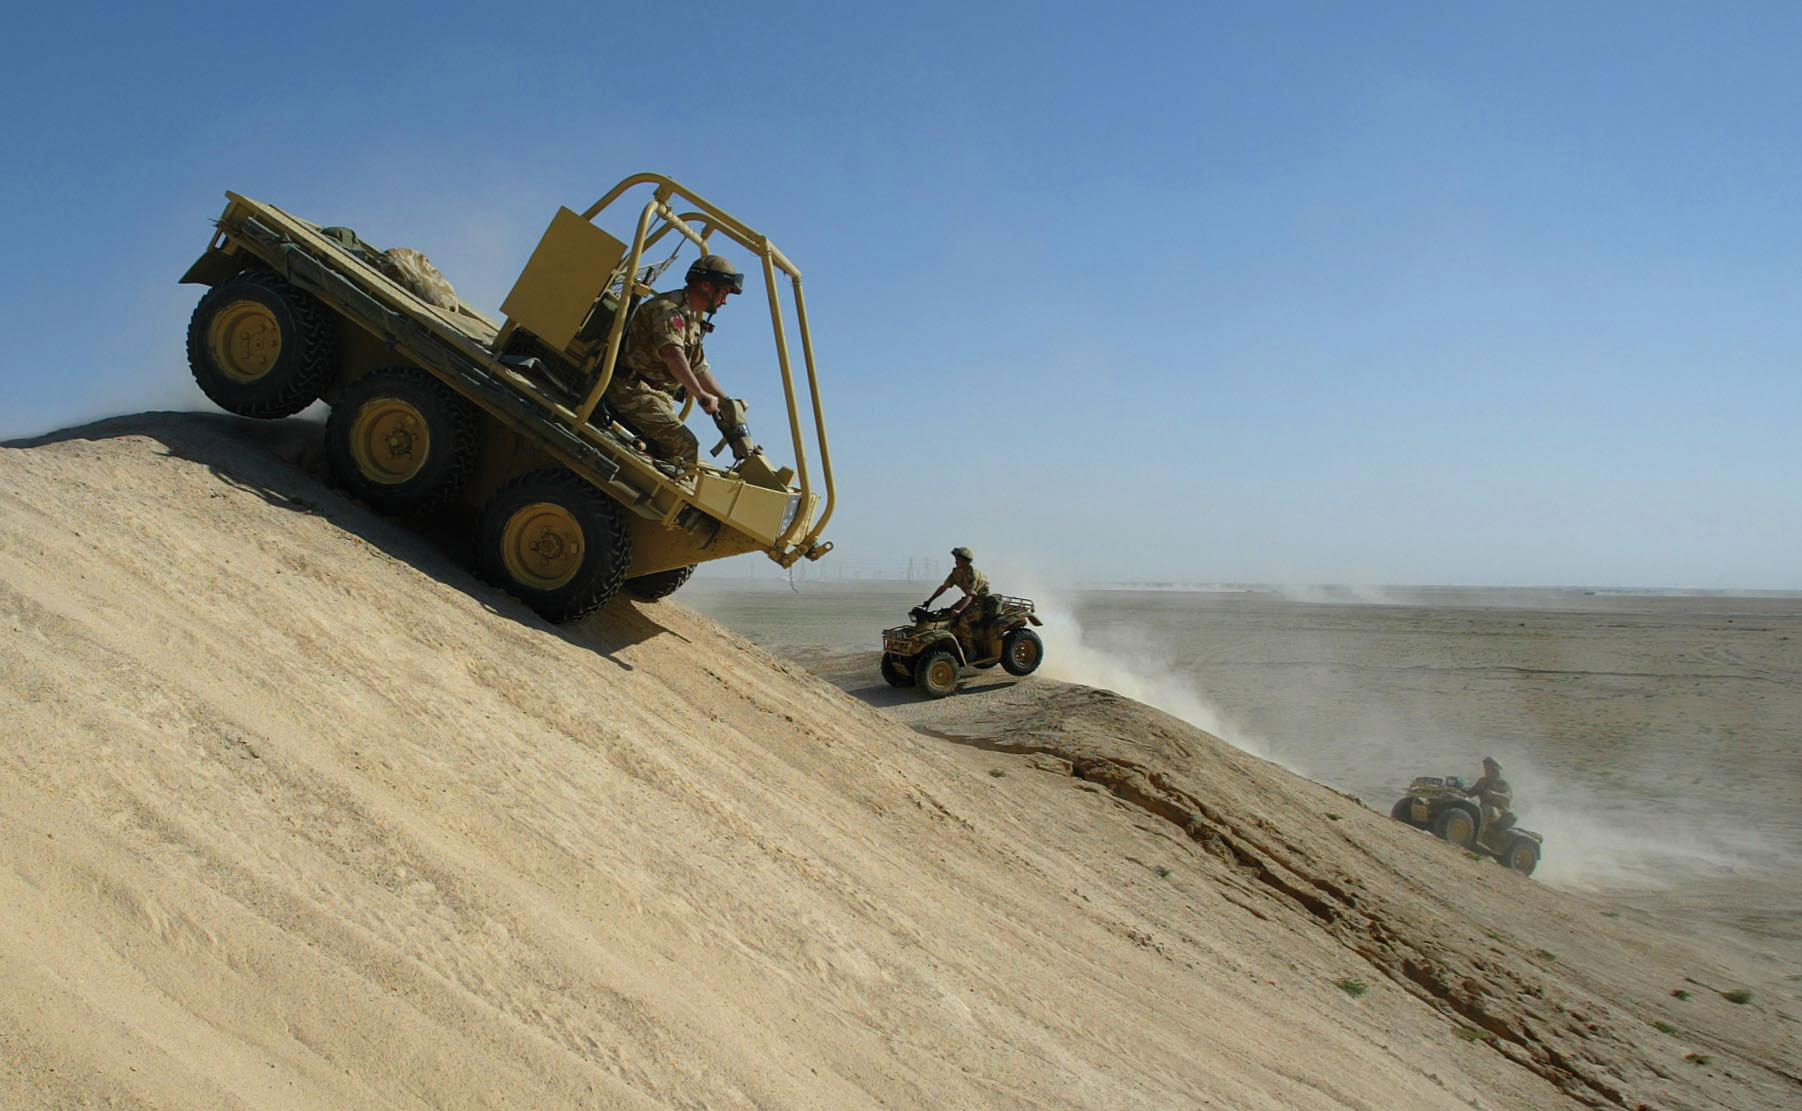 Soldiers from the 1st Battalion The Parachute Regiment practise driving all terrain vehicles in the Kuwaiti desert.